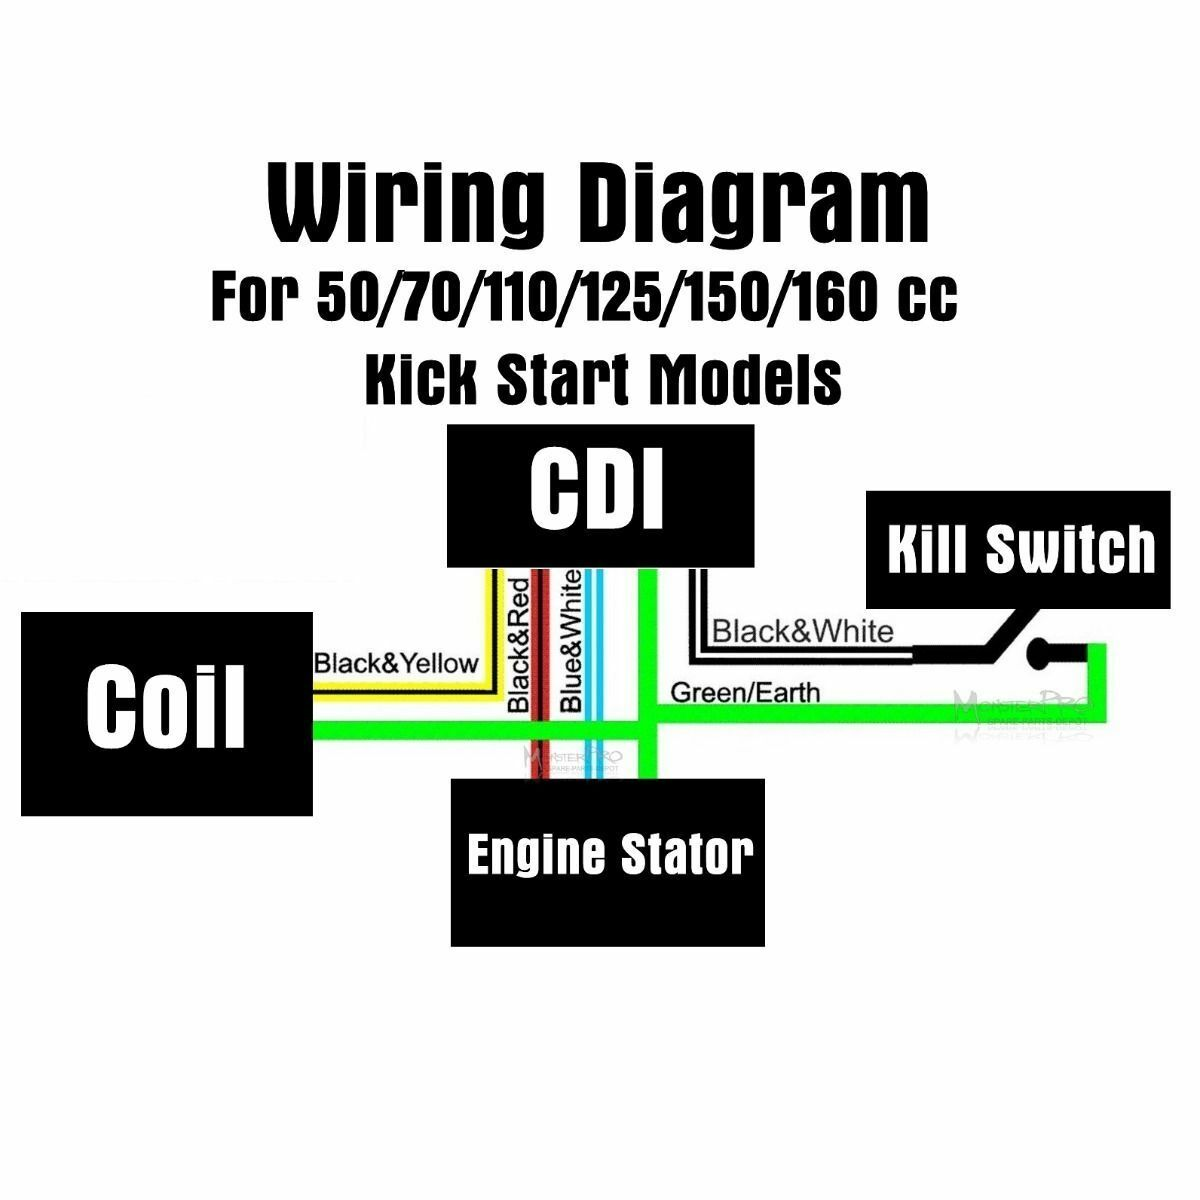 70cc Chinese Atv Wiring Diagram. Diagram. Auto Wiring Diagram